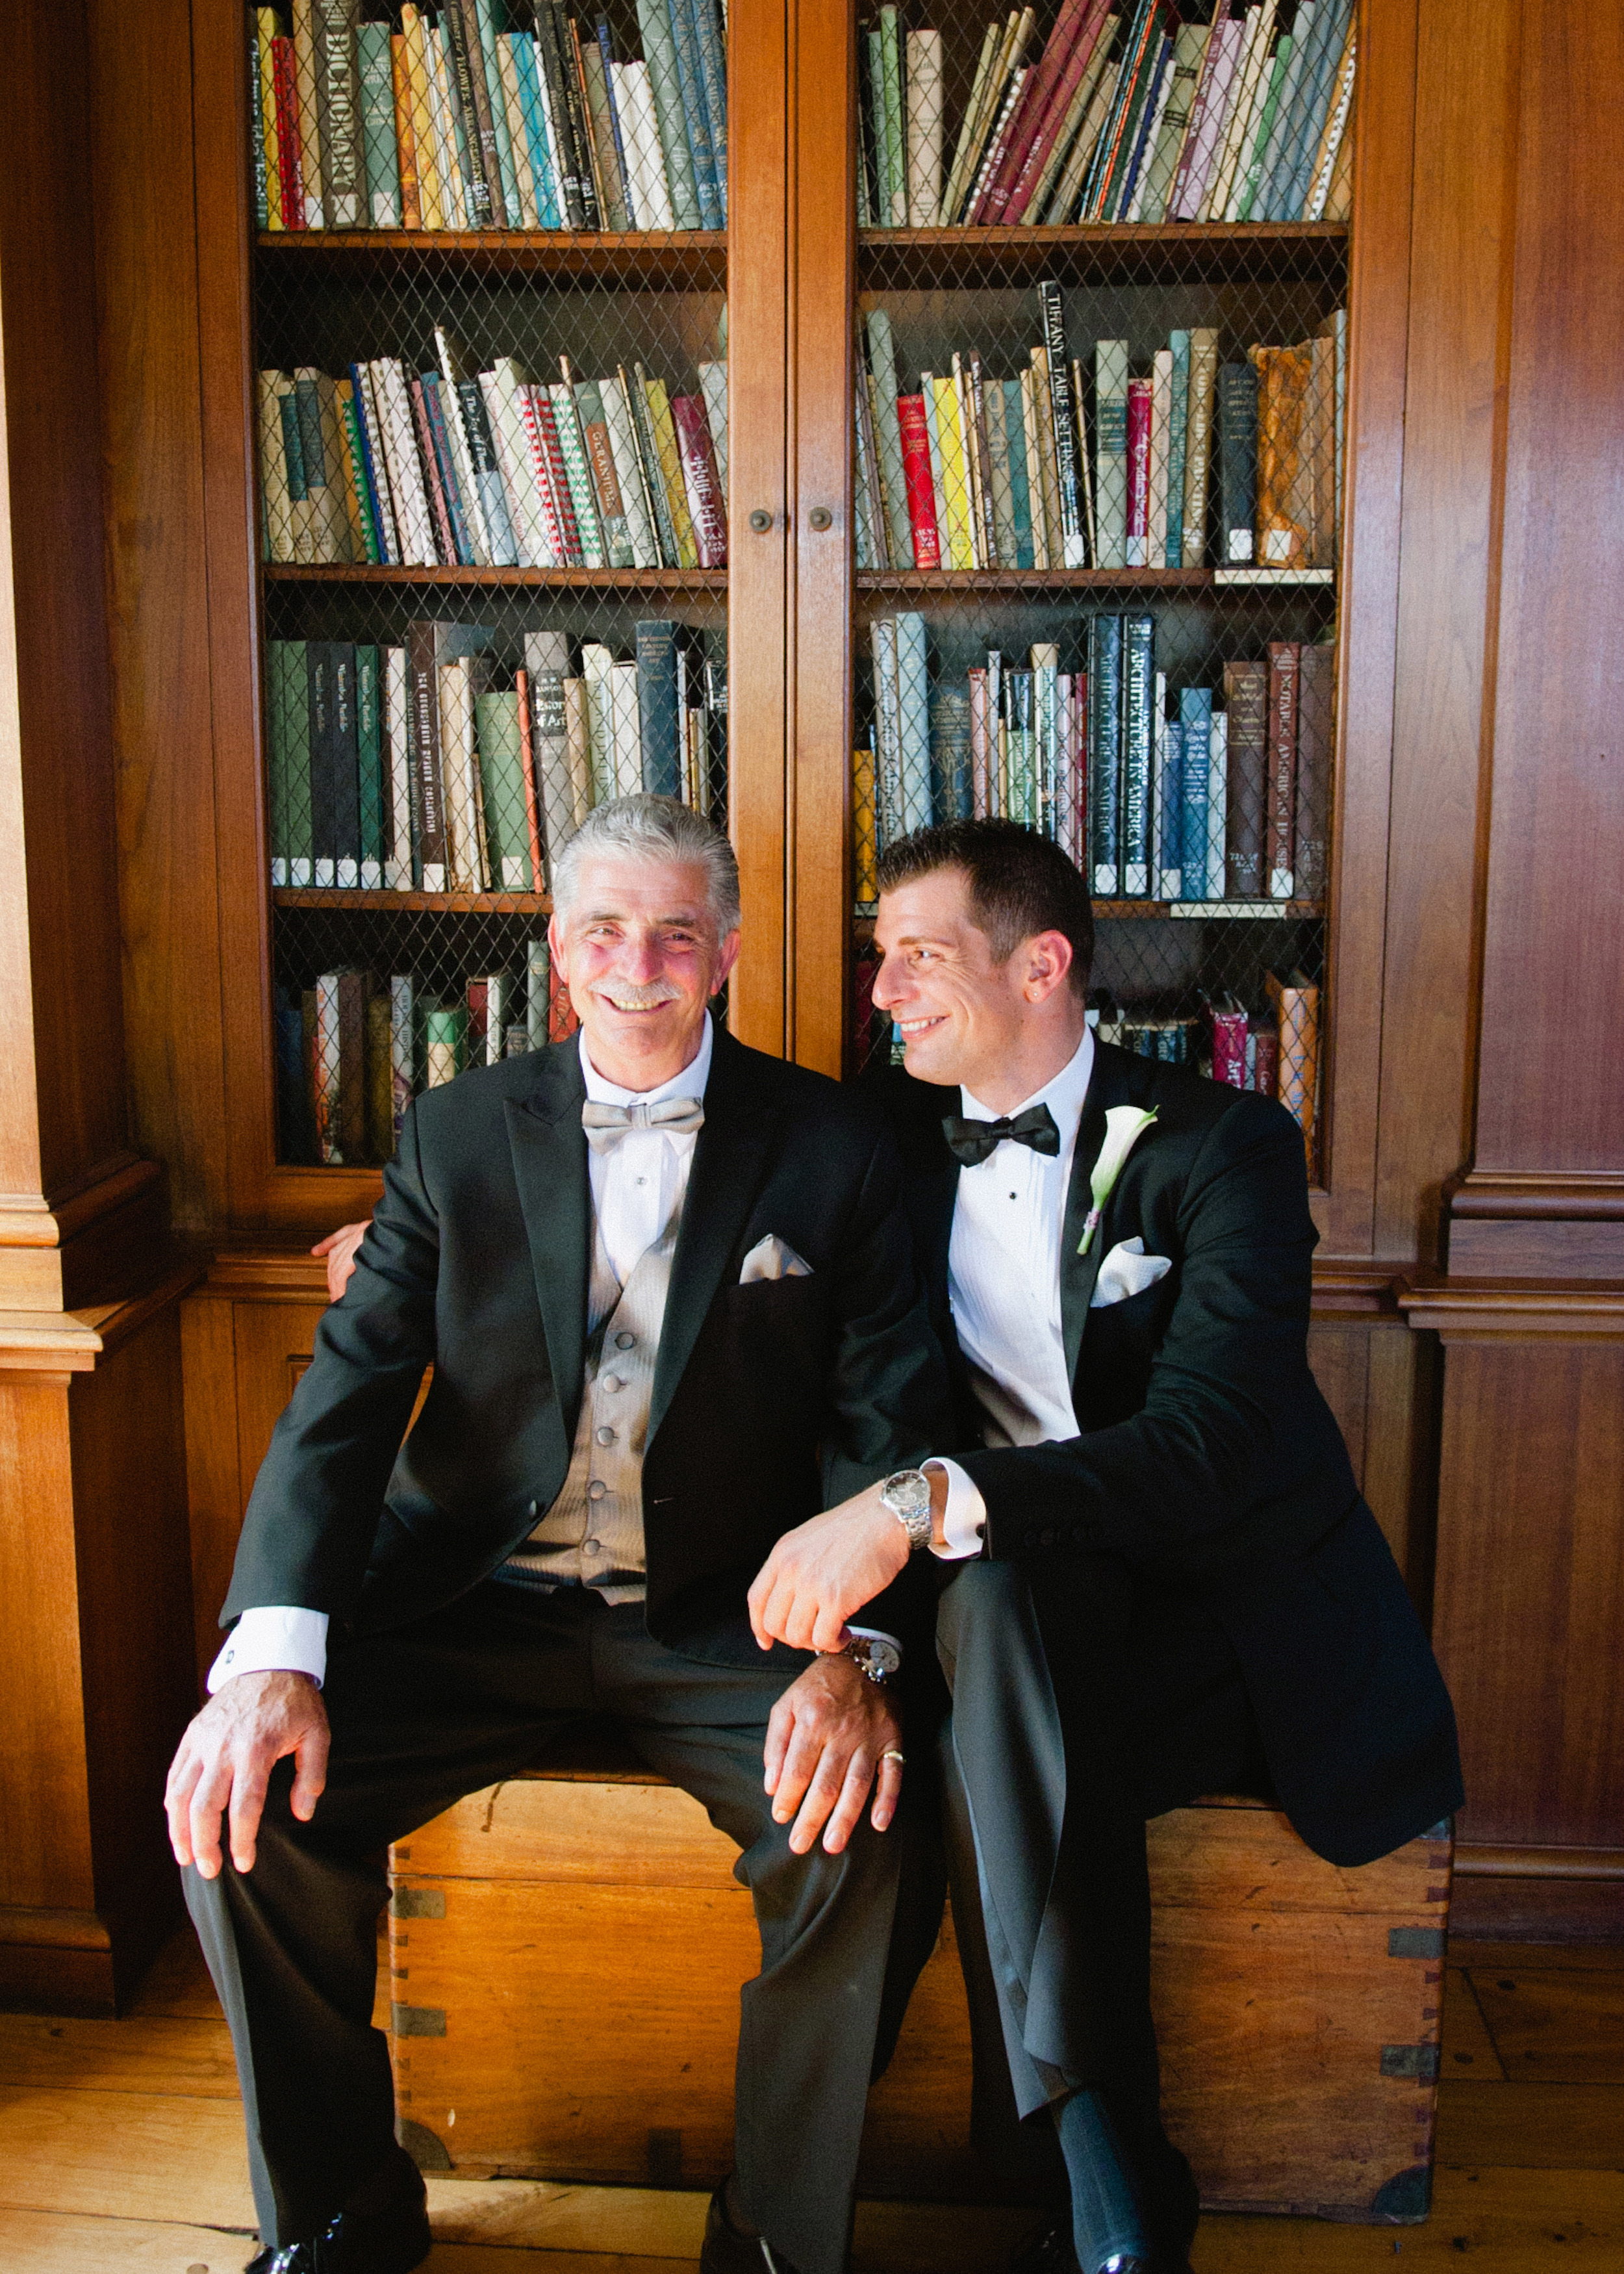 Destination Wedding Photographer Lexia Frank is a film photographer on the west coast specializing in luxury weddings and fine art film photography. In this article she writes a letter to the groom, and talks about the groom's role in photography. groom poses with his father during his villa terrace wedding in milwaukee wisconsin wedding photographer www.lexiafrank.com